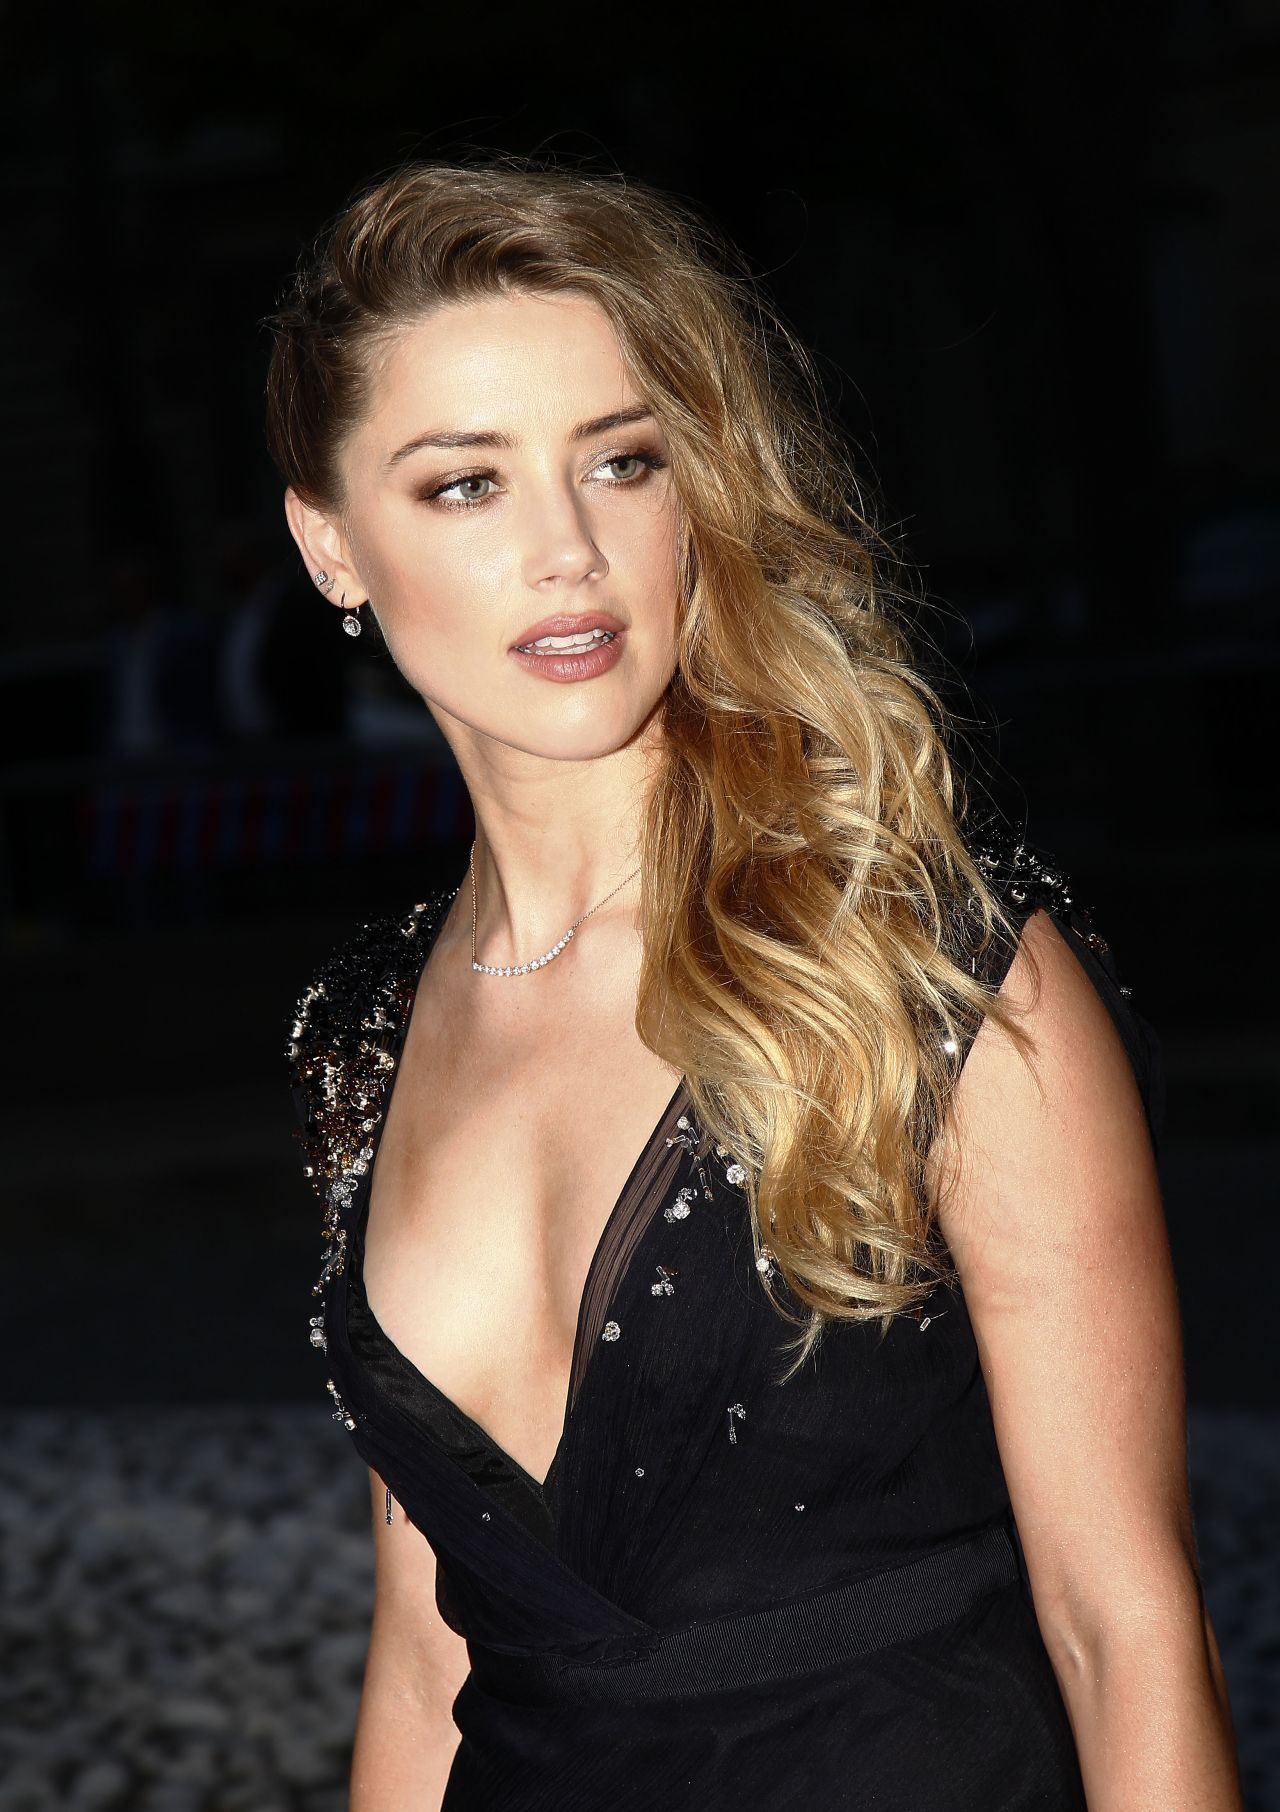 Amber Heard Is The Most Scientifically Beautiful Woman: Miu Miu Fragrance And Croisiere 2016